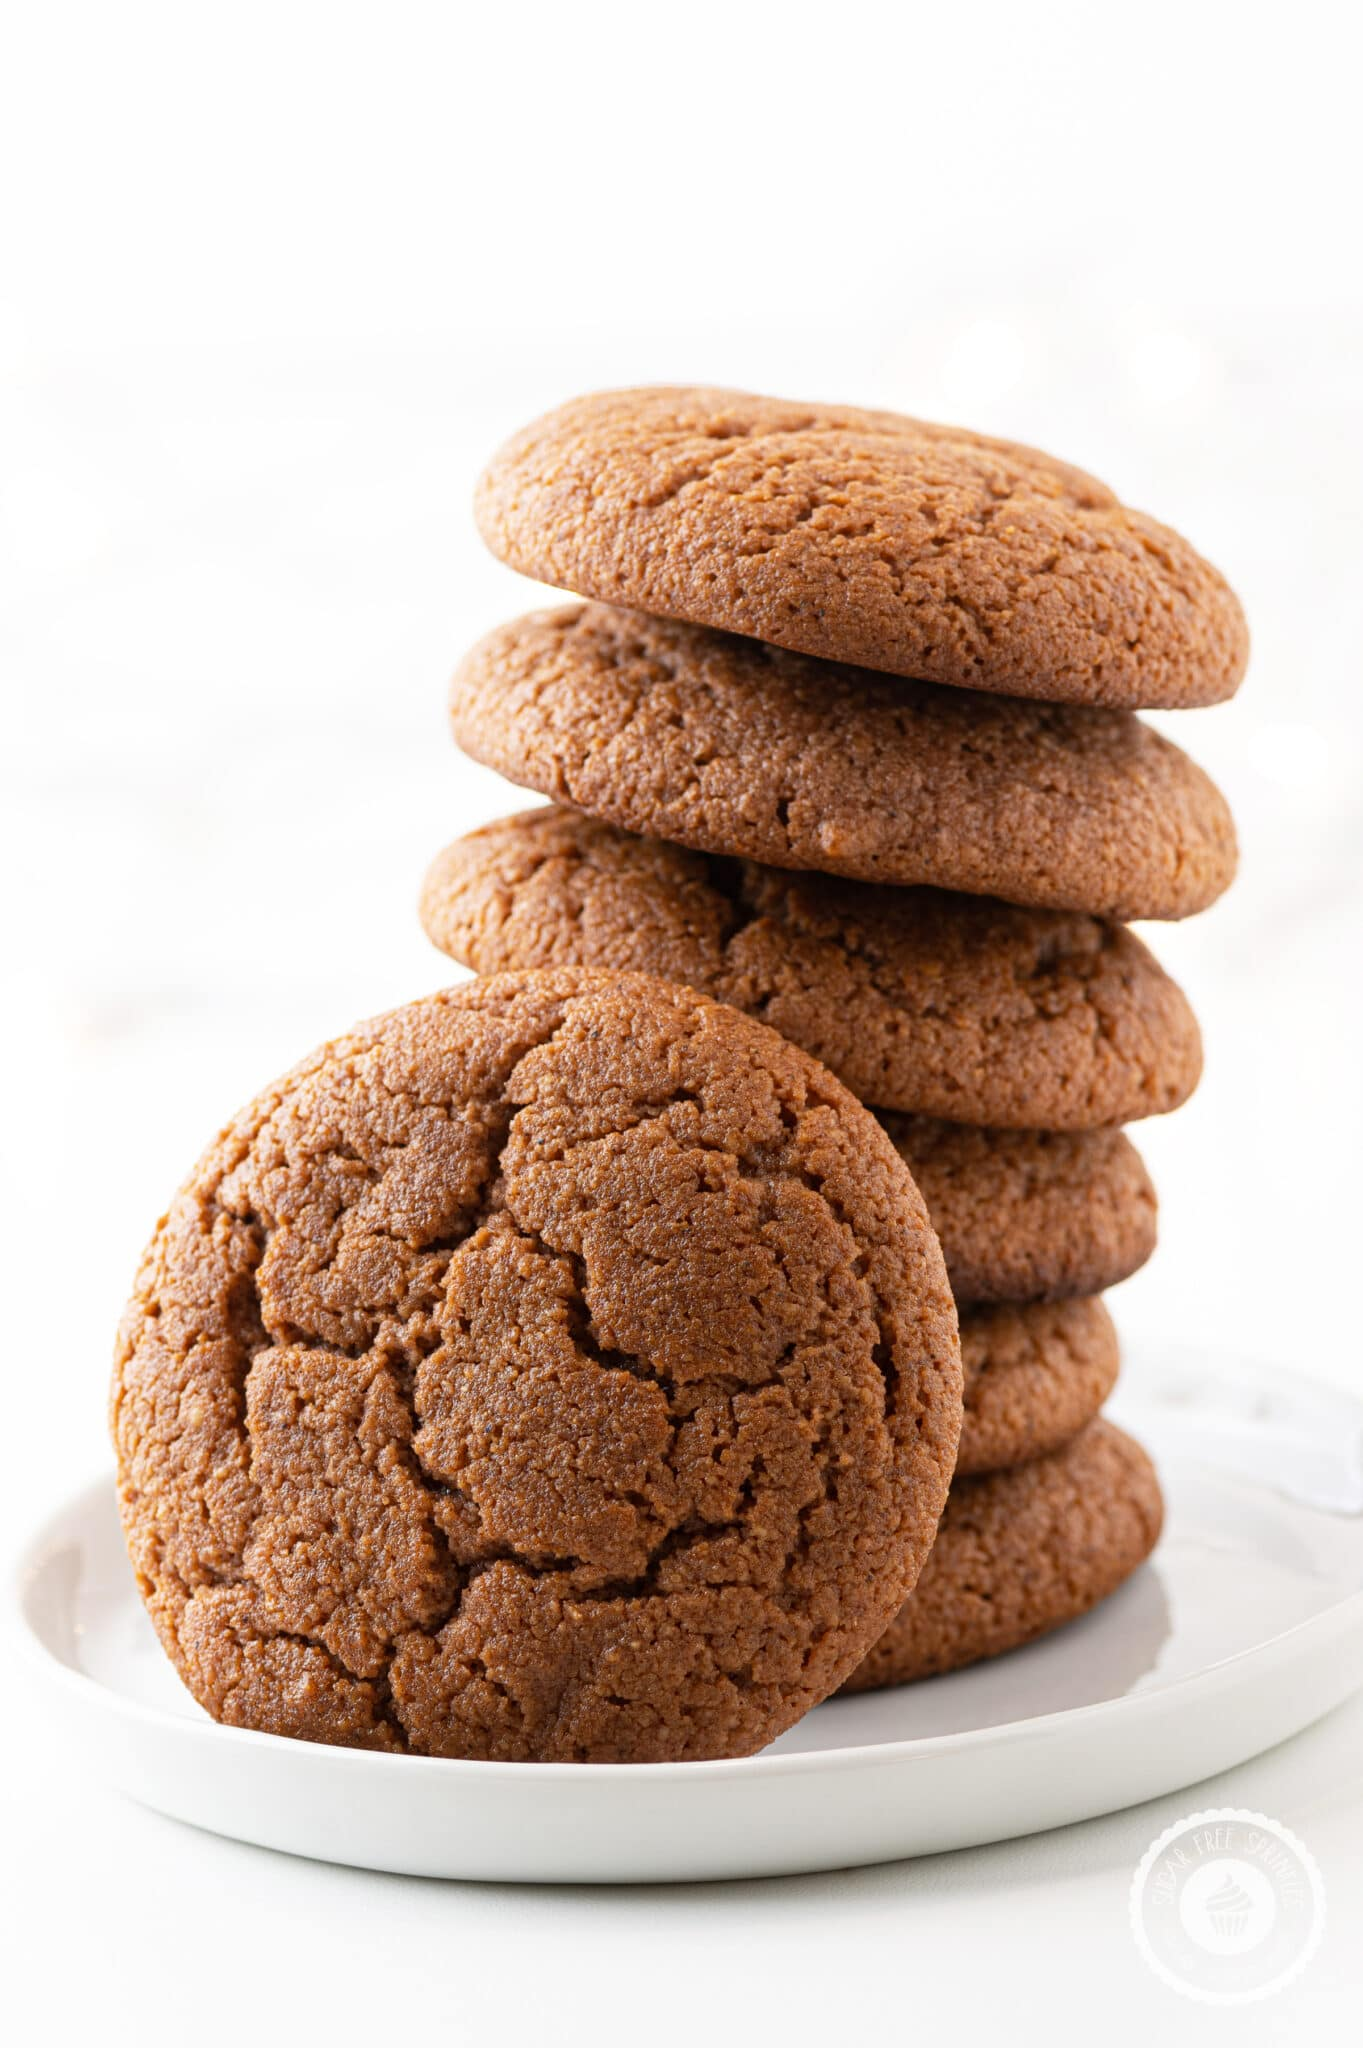 A stack of keto gingerbread cookies on a white plate against a bright white background.